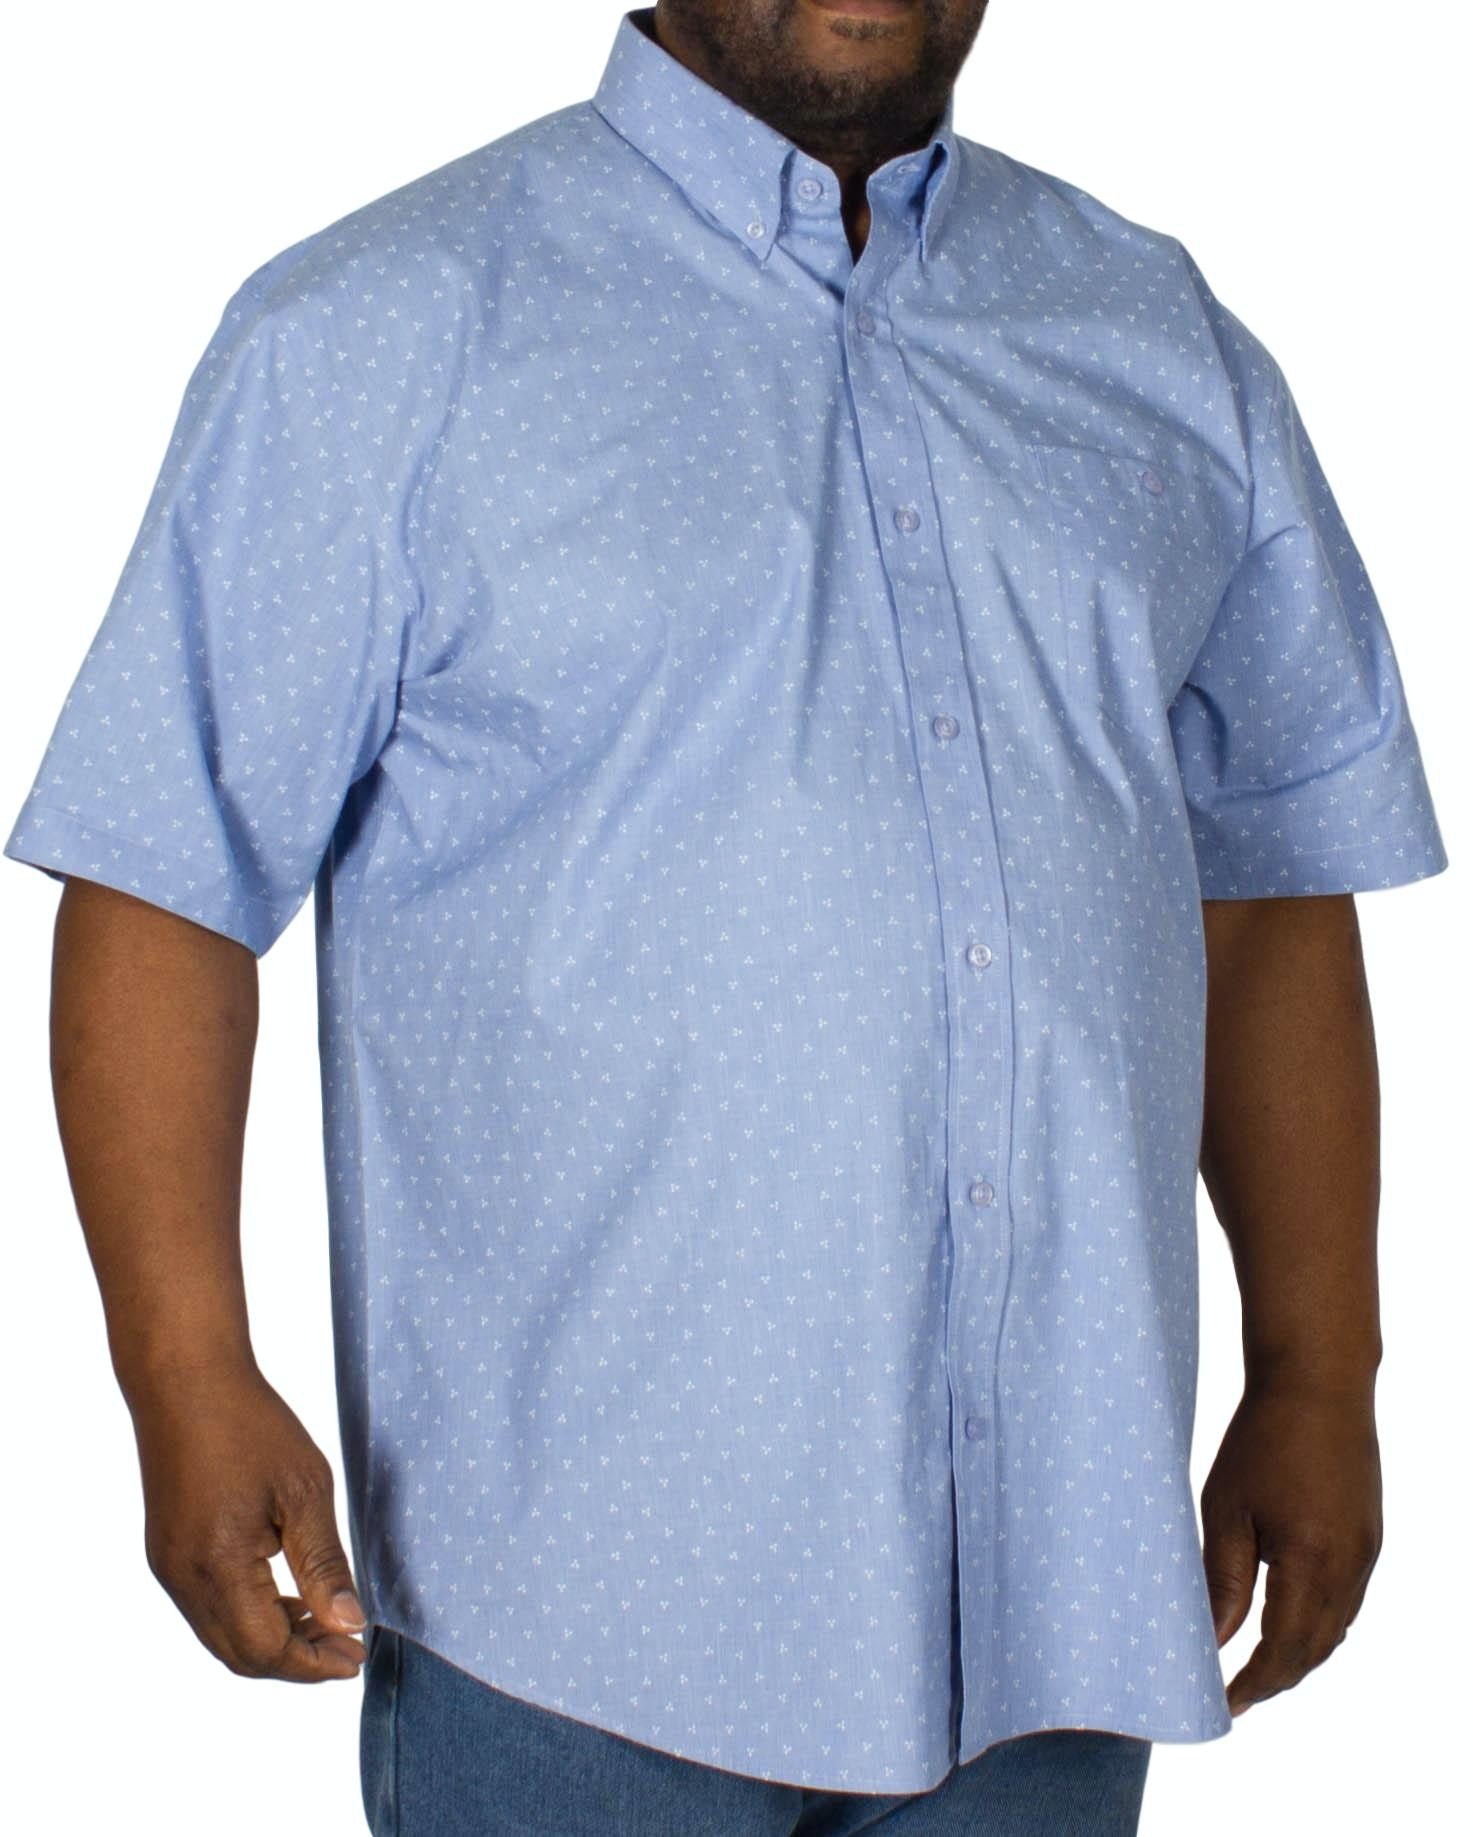 Espionage Dot Print Short Sleeve Shirt Blue